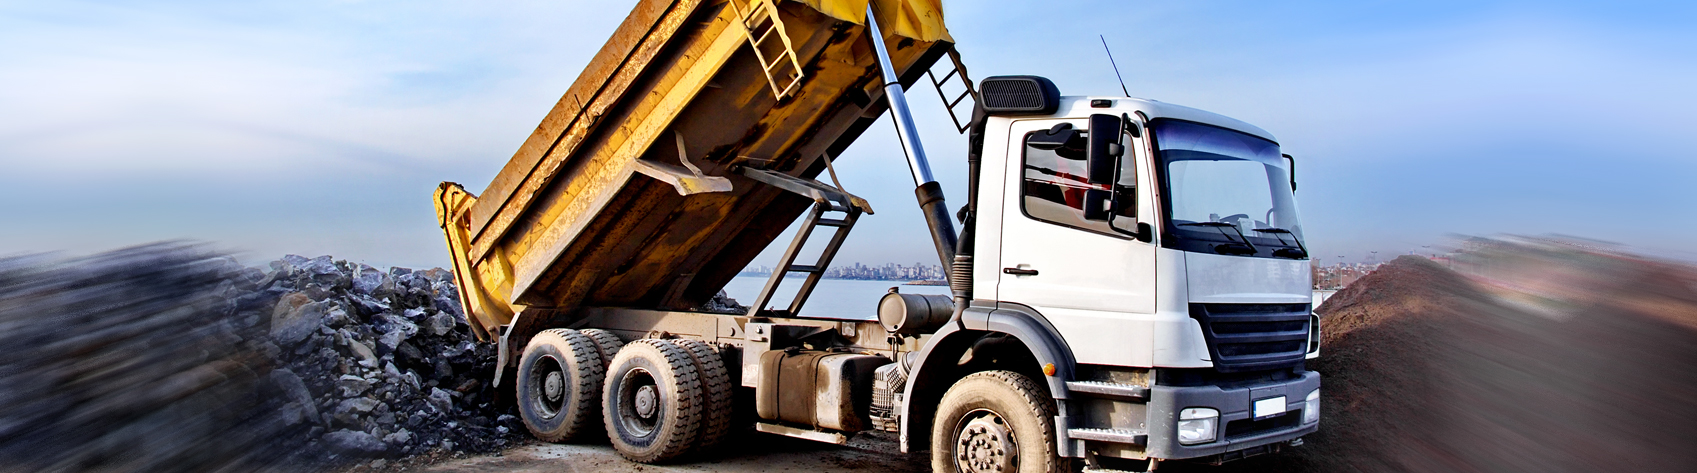 Used Trucks and Used Vehicles – GERL Construction Machines